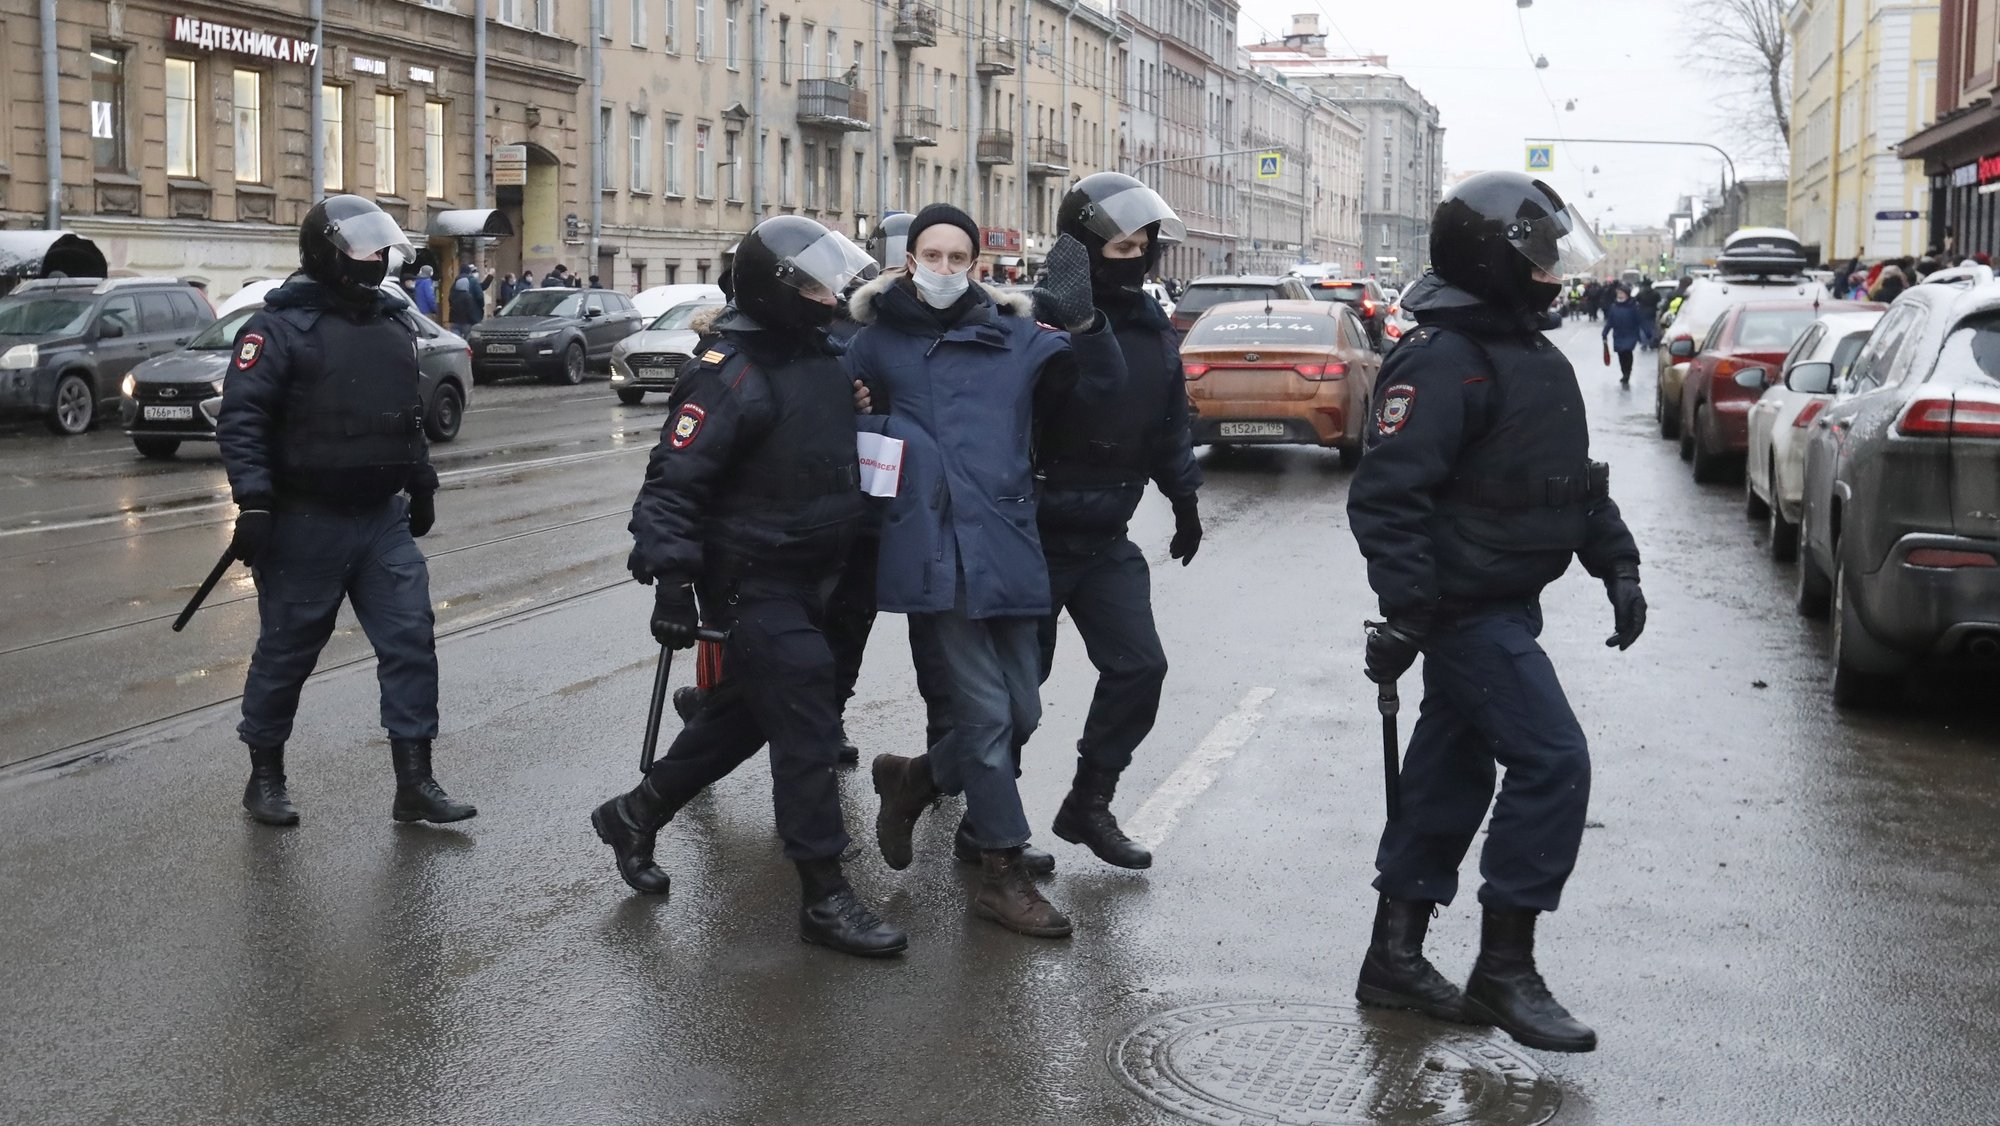 epa08976951 Russian police officers detain protester during an unauthorized protest in support of Russian opposition leader Alexei Navalny, in St. Petersburg, Russia, 31 January 2021. Navalny was detained after his arrival to Moscow from Germany, where he was recovering from a poisoning attack with a nerve agent, on 17 January 2021. A Moscow judge on 18 January ruled that he will remain in custody for 30 days following his airport arrest. Navalny urged Russians to take to the streets to protest. In many Russian cities mass events are prohibited due to an increase in COVID-19 cases.  EPA/ANATOLY MALTSEV